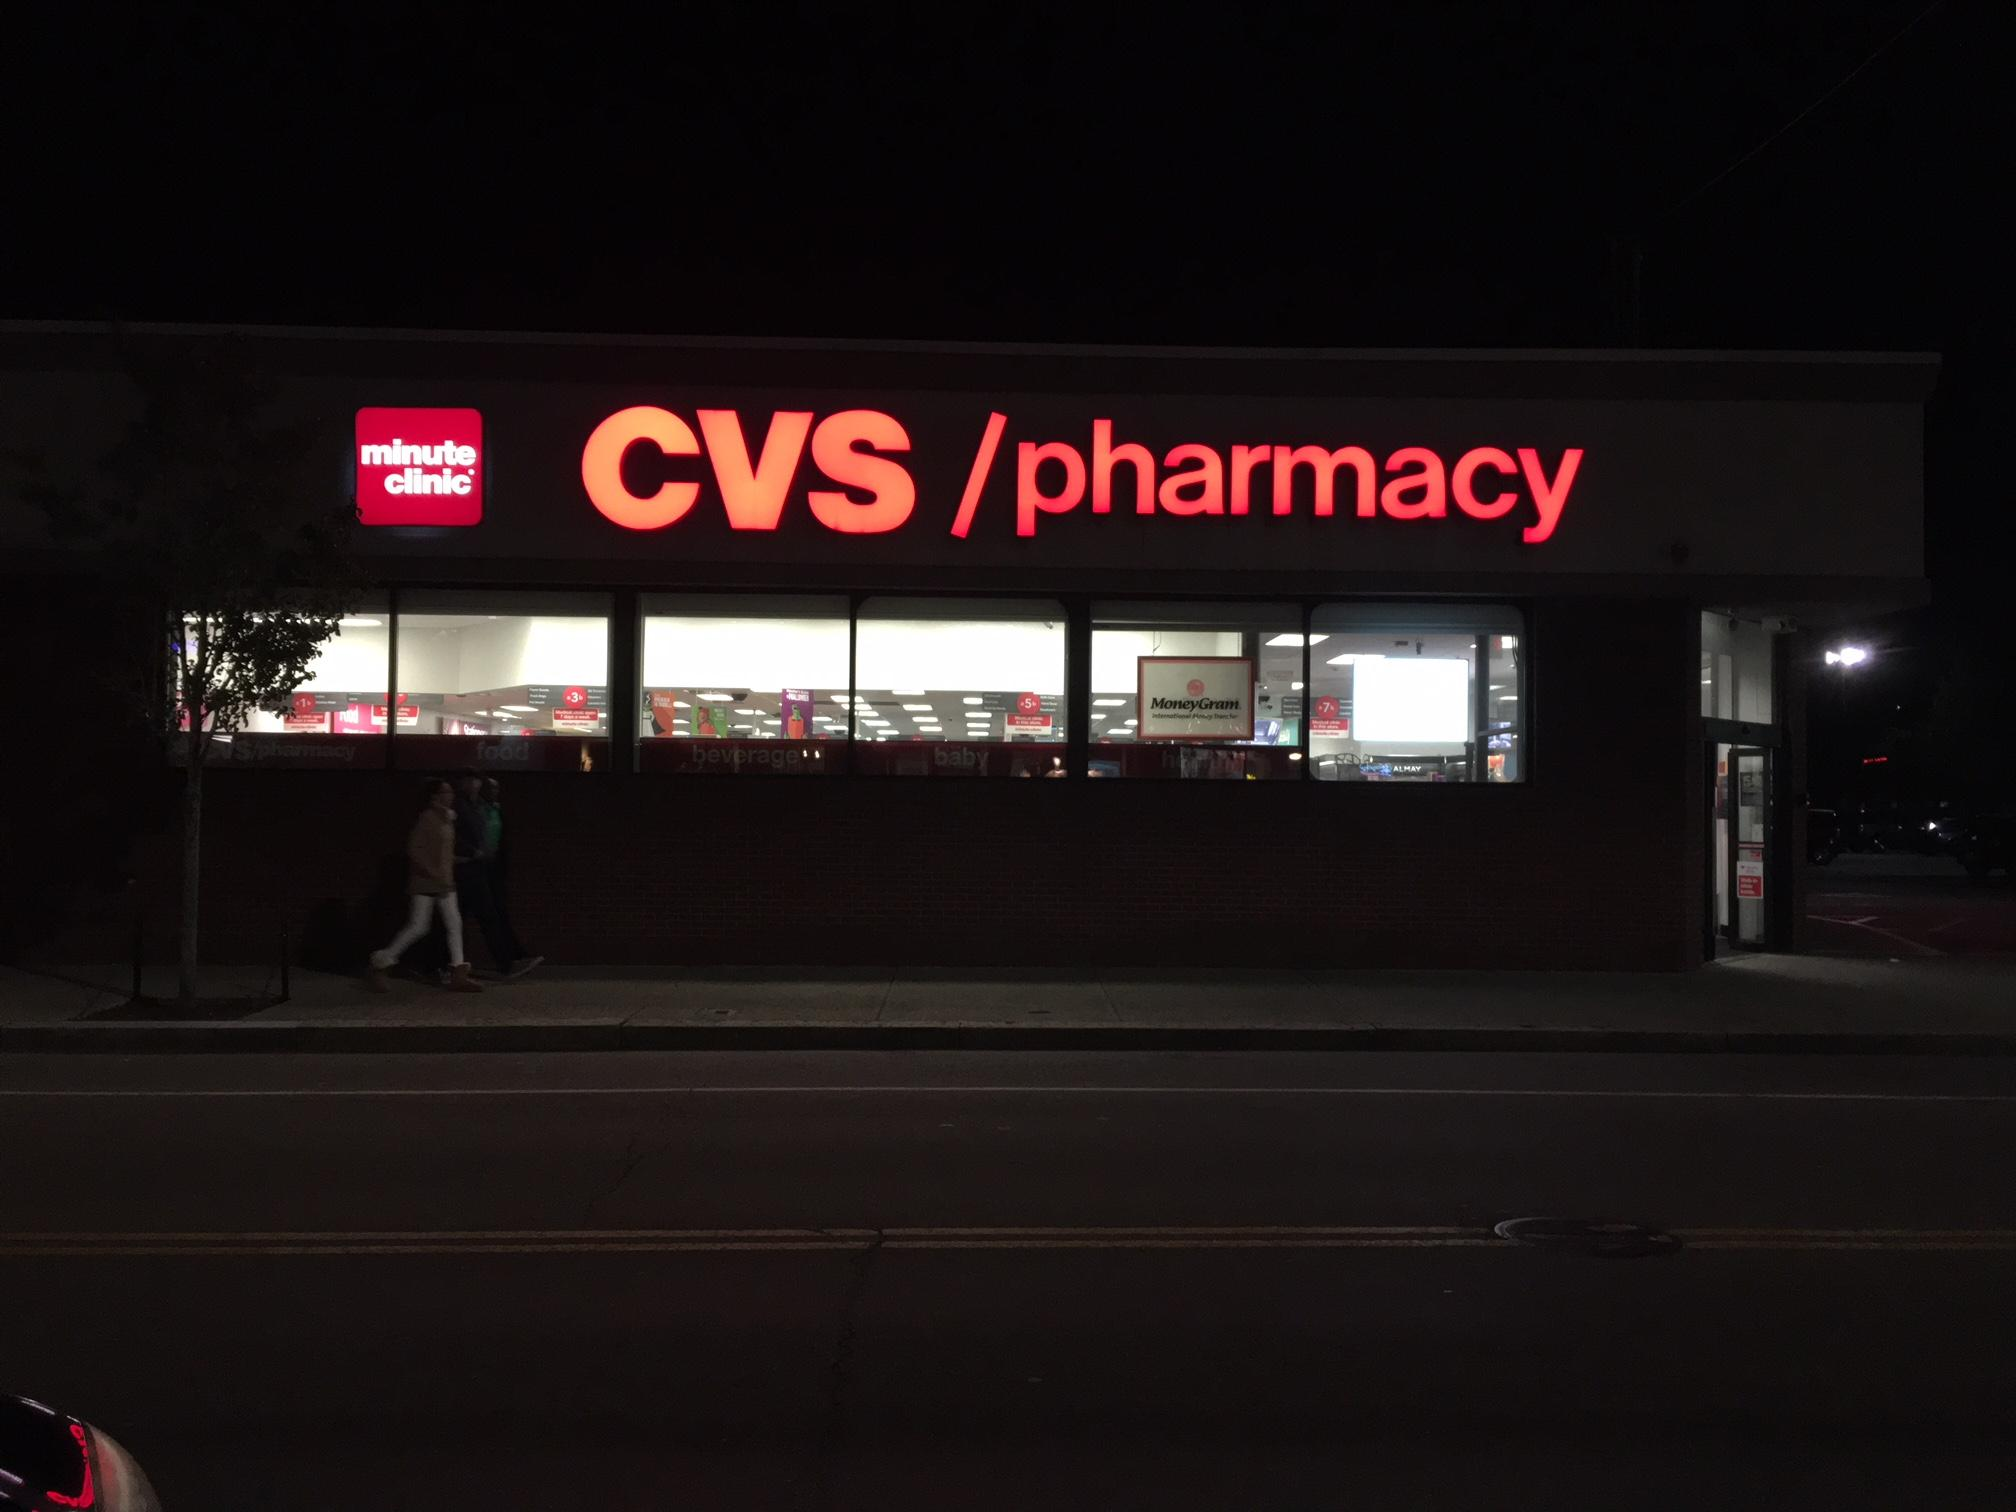 Coupon dispute prompts white CVS manager to call police on black woman